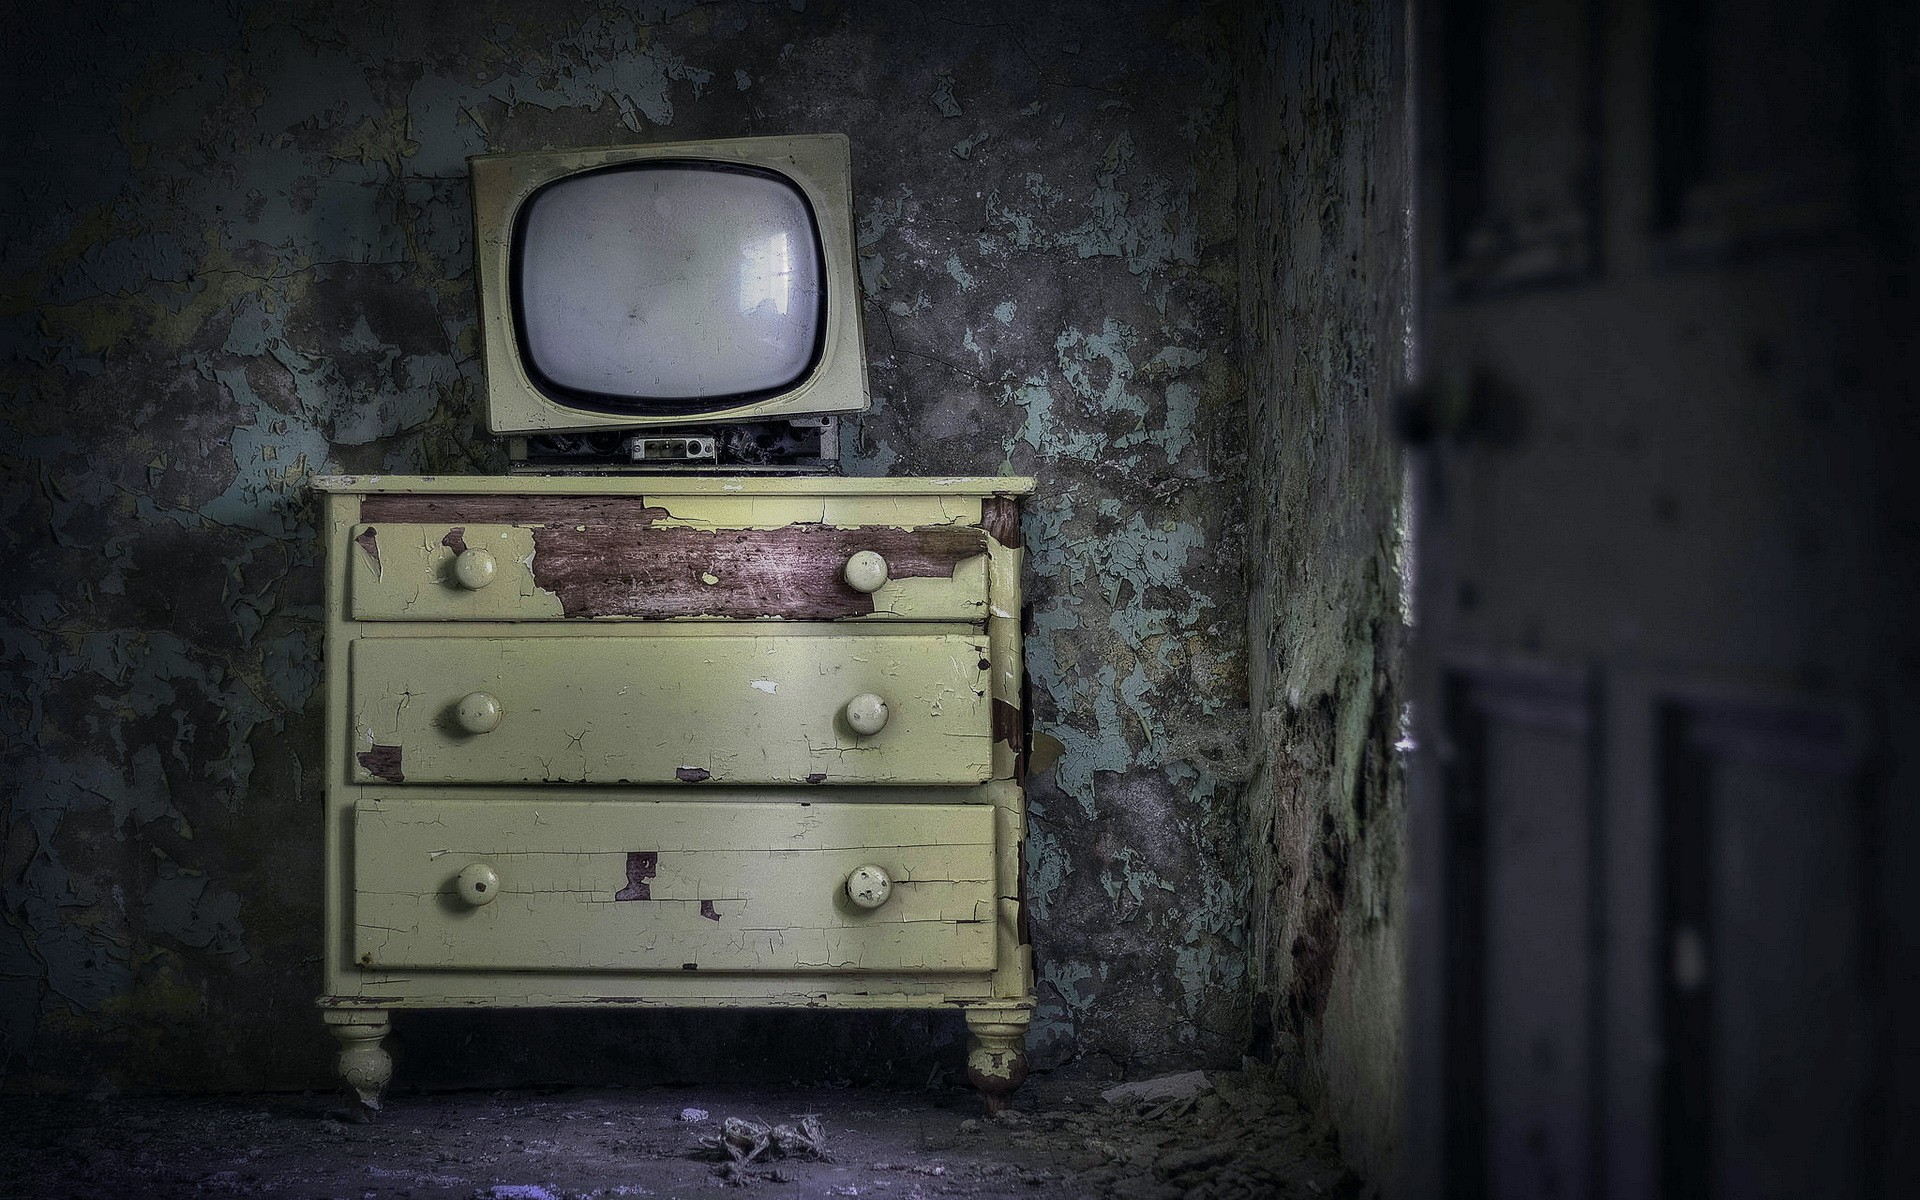 Old Vintage TV, HD Photography, 4k Wallpapers, Images